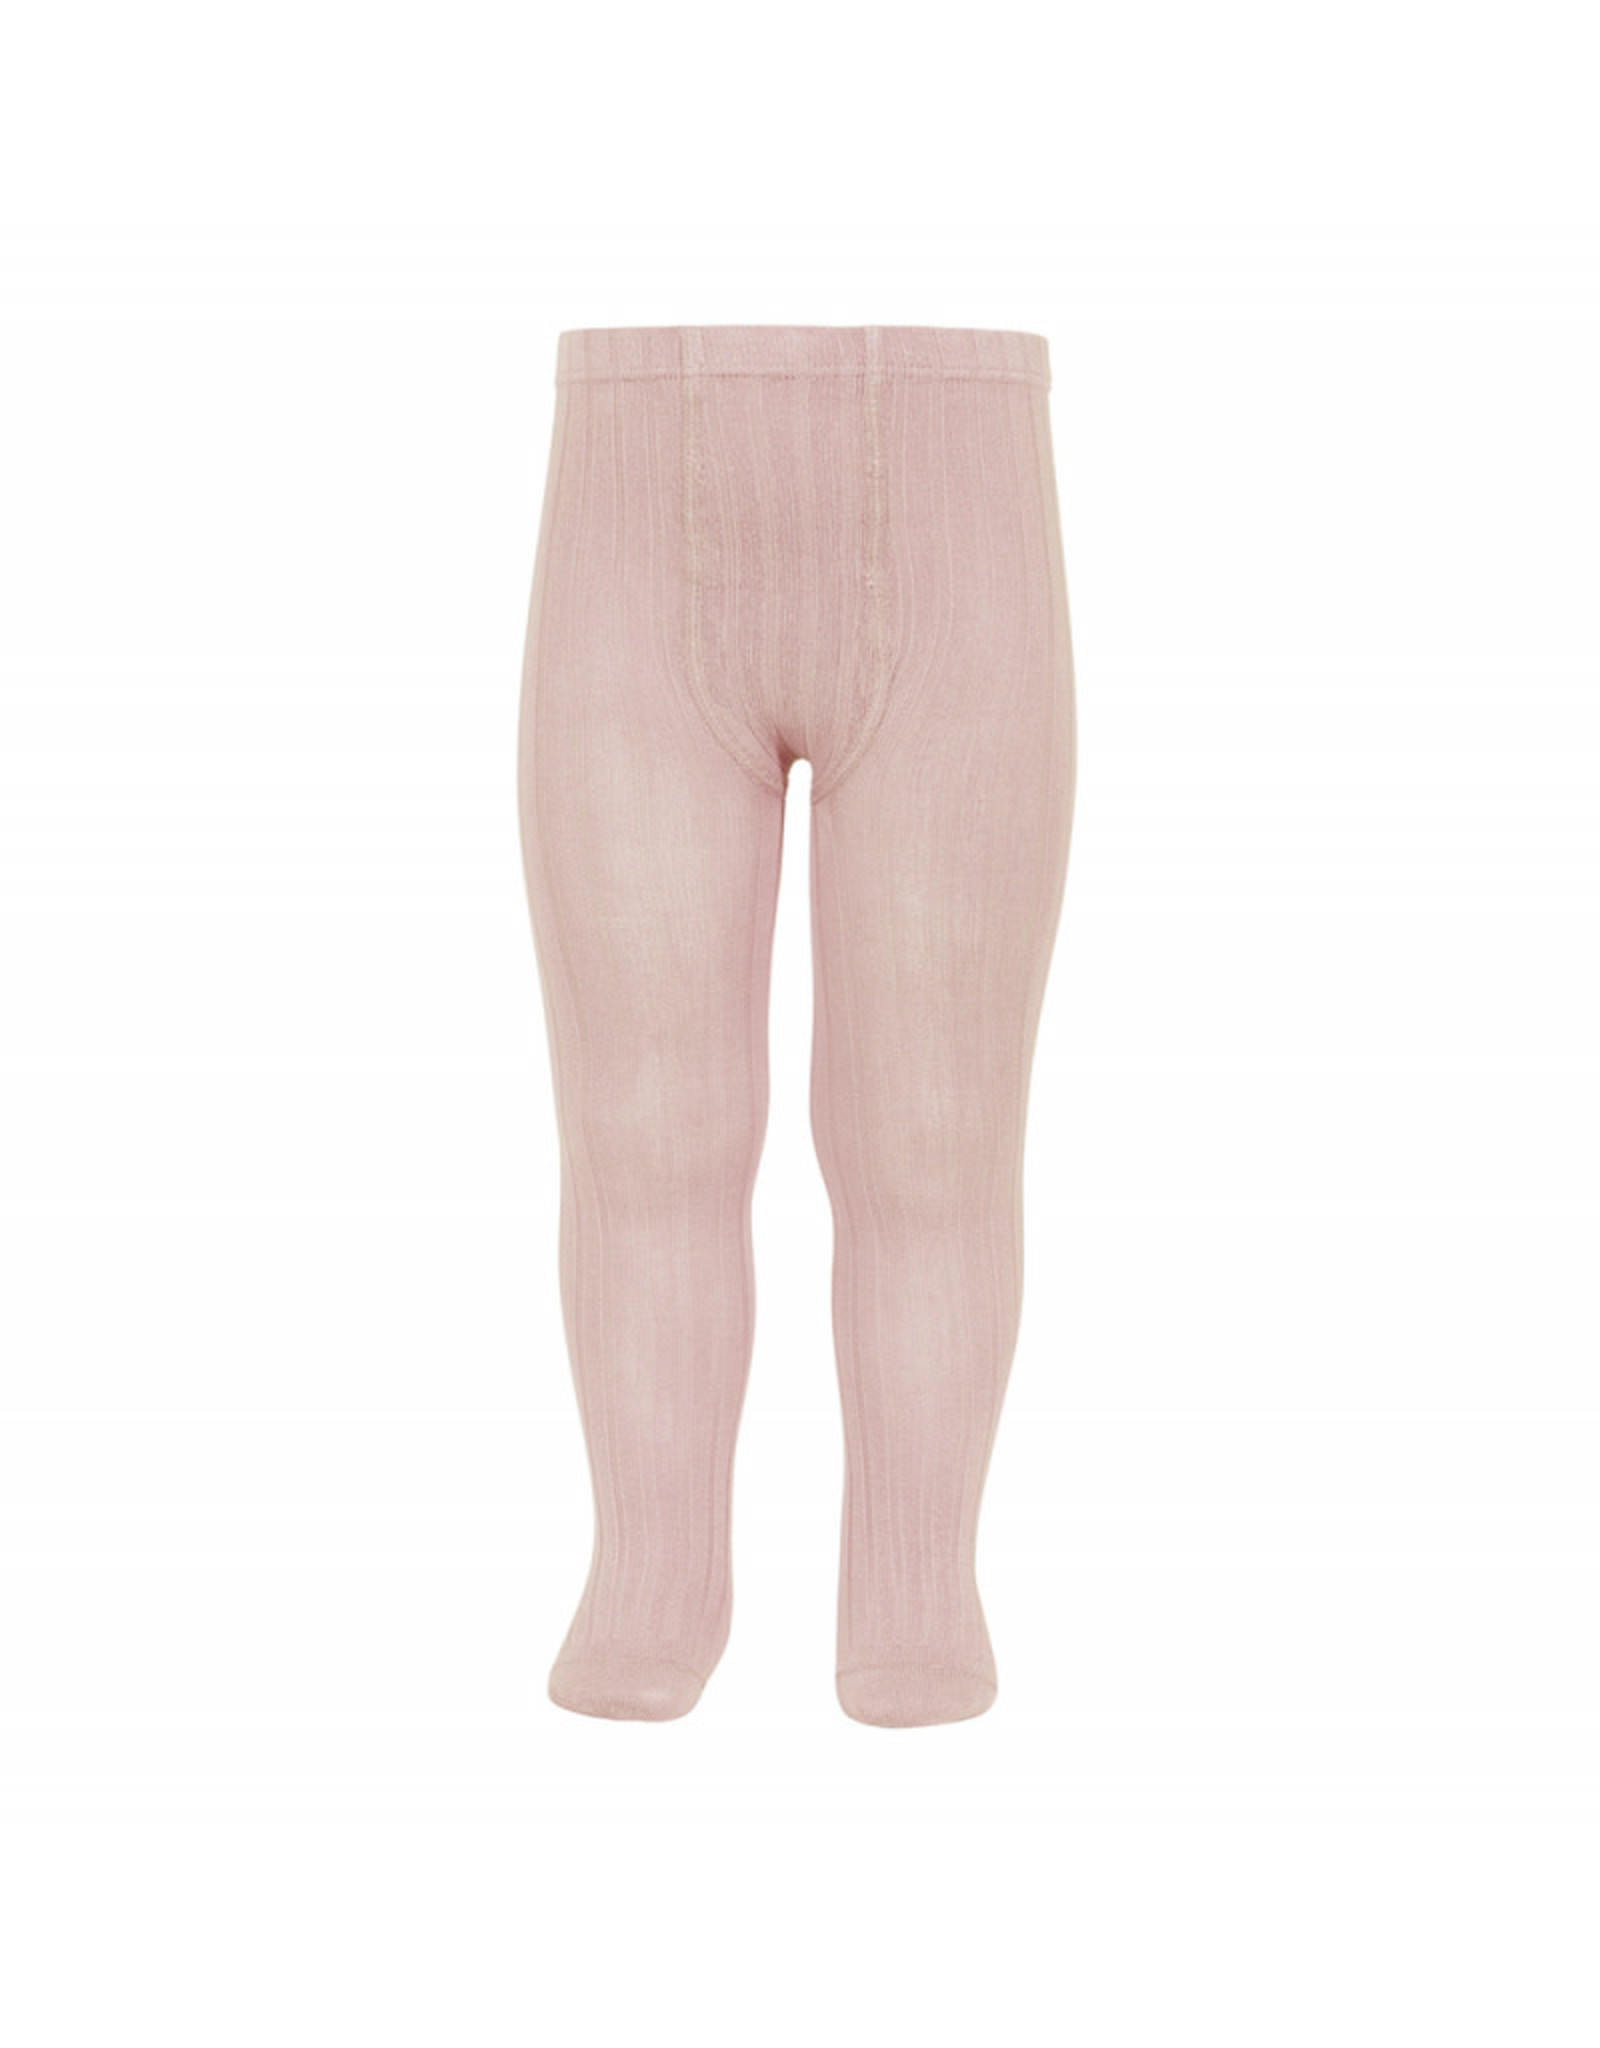 CONDOR Old Rose Ribbed Tights